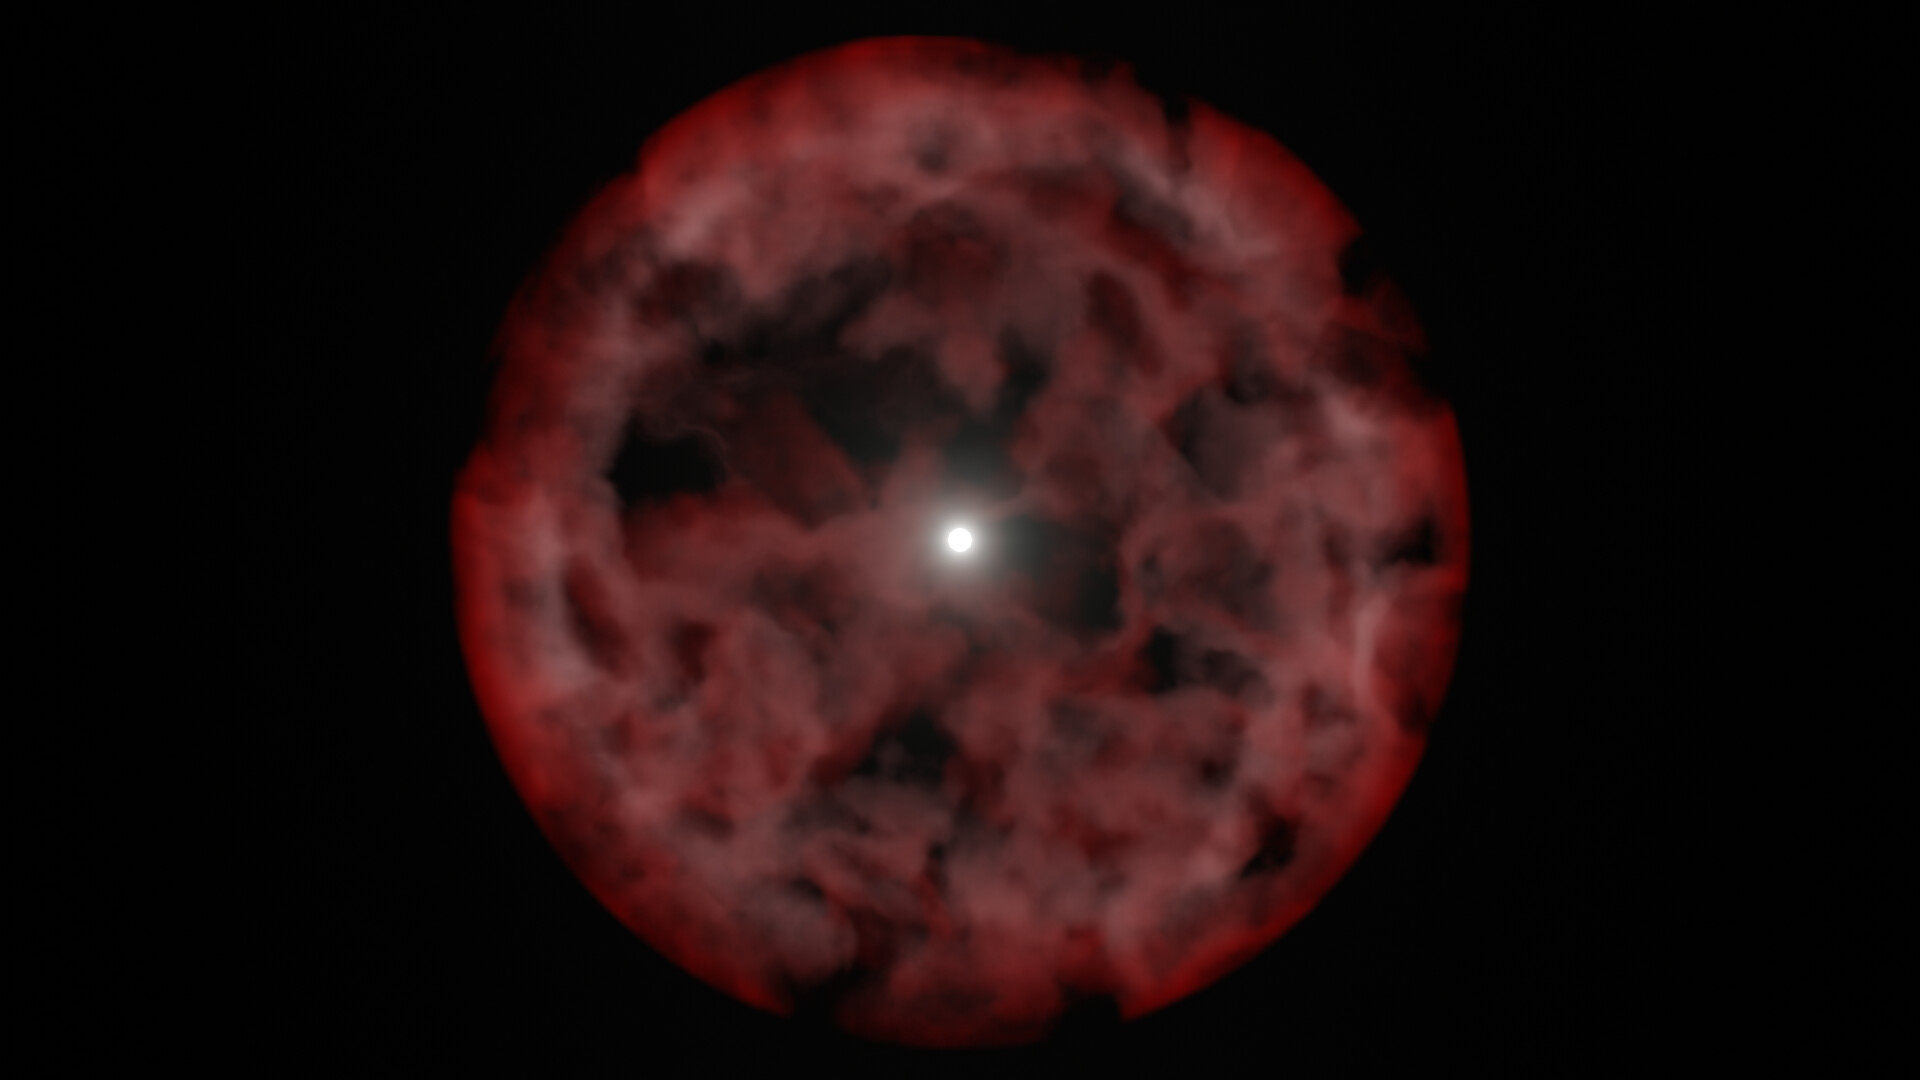 So it begins...Looks like a hubble image it's so fuzzy, so I bumped up the sampling